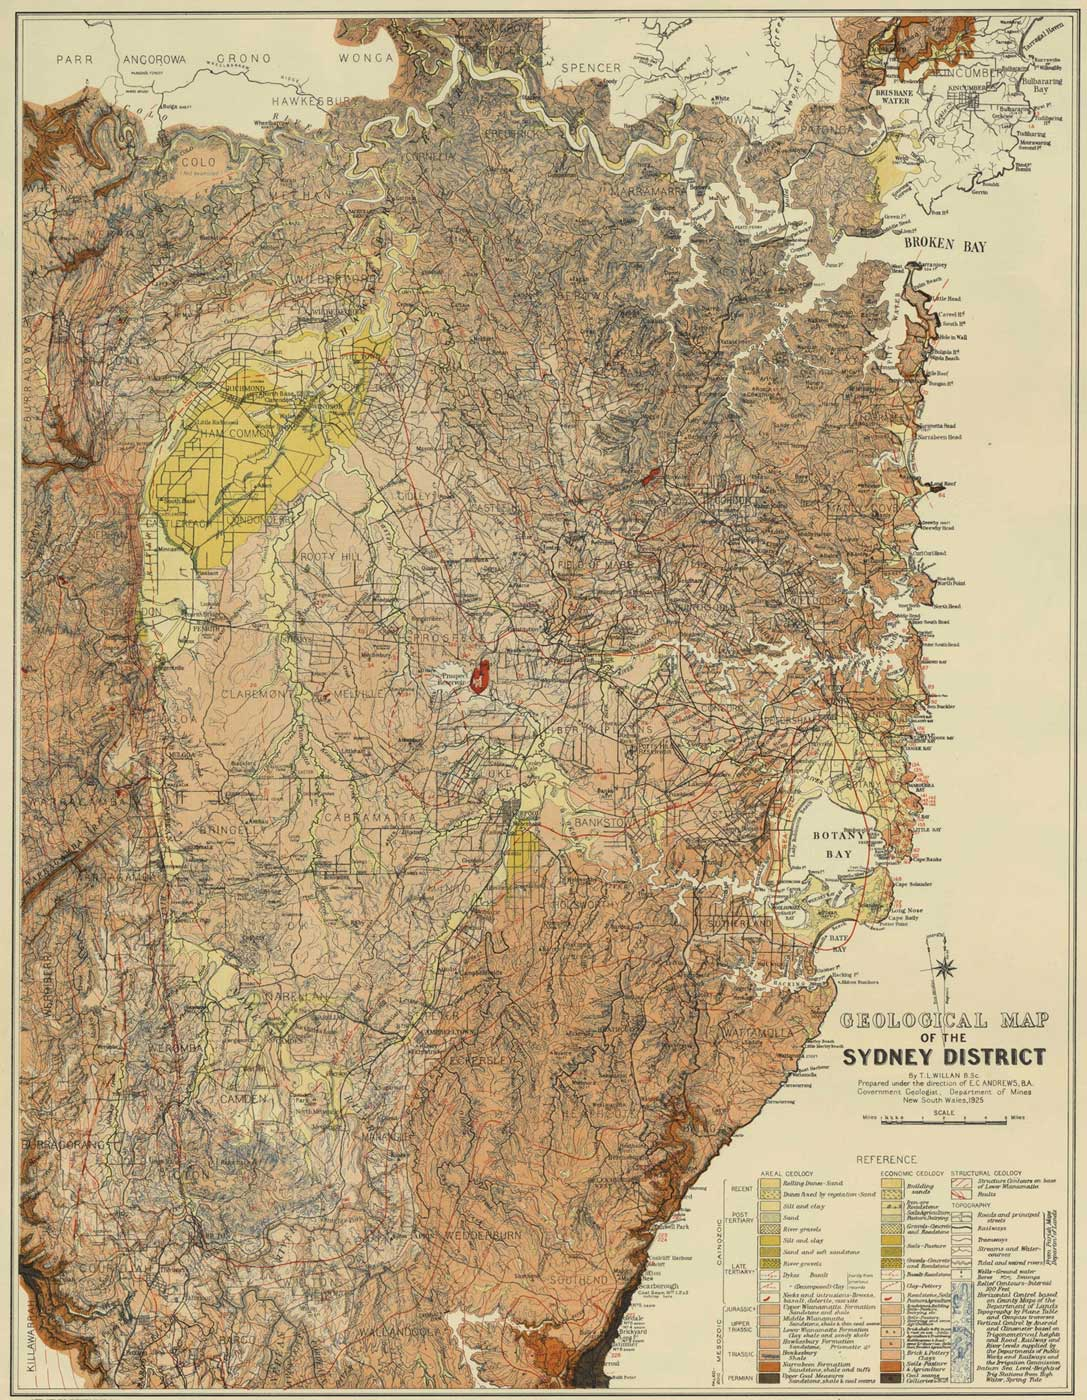 Geological Map of Sydney